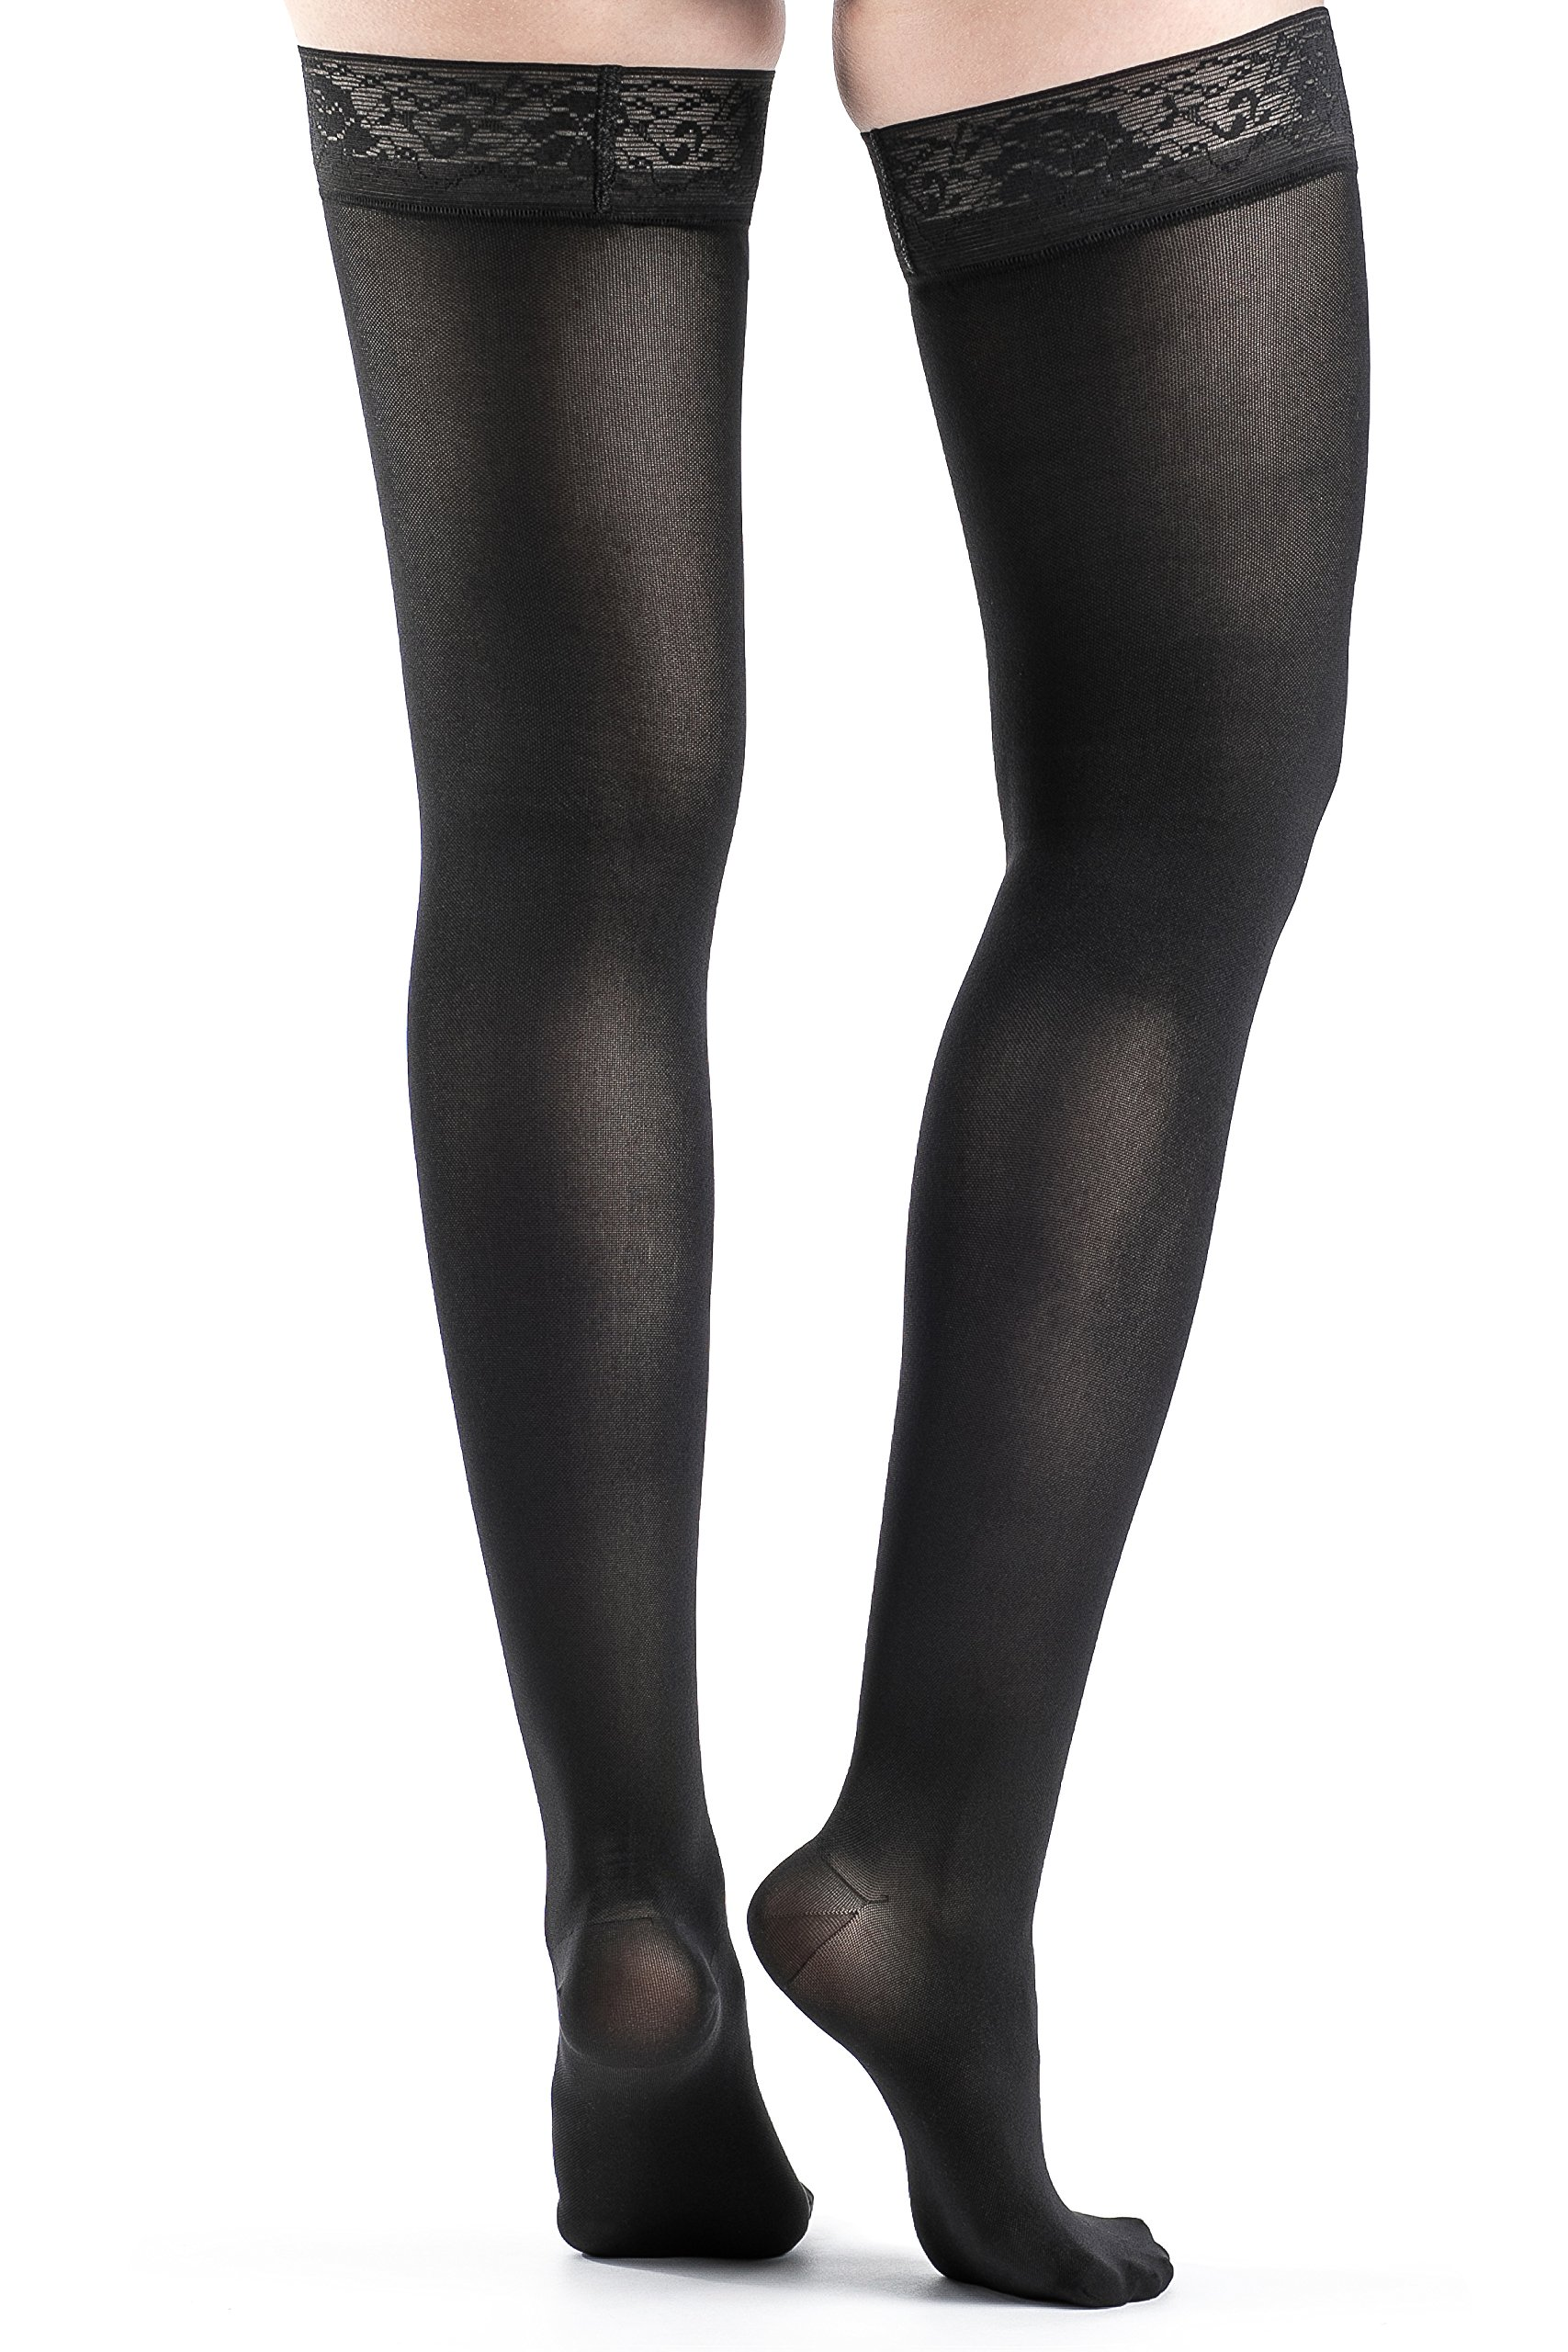 Soft Opaque 20-30 mmHg Closed Toe Thigh High Sock Size: Small Long (SL), Color: Black 99